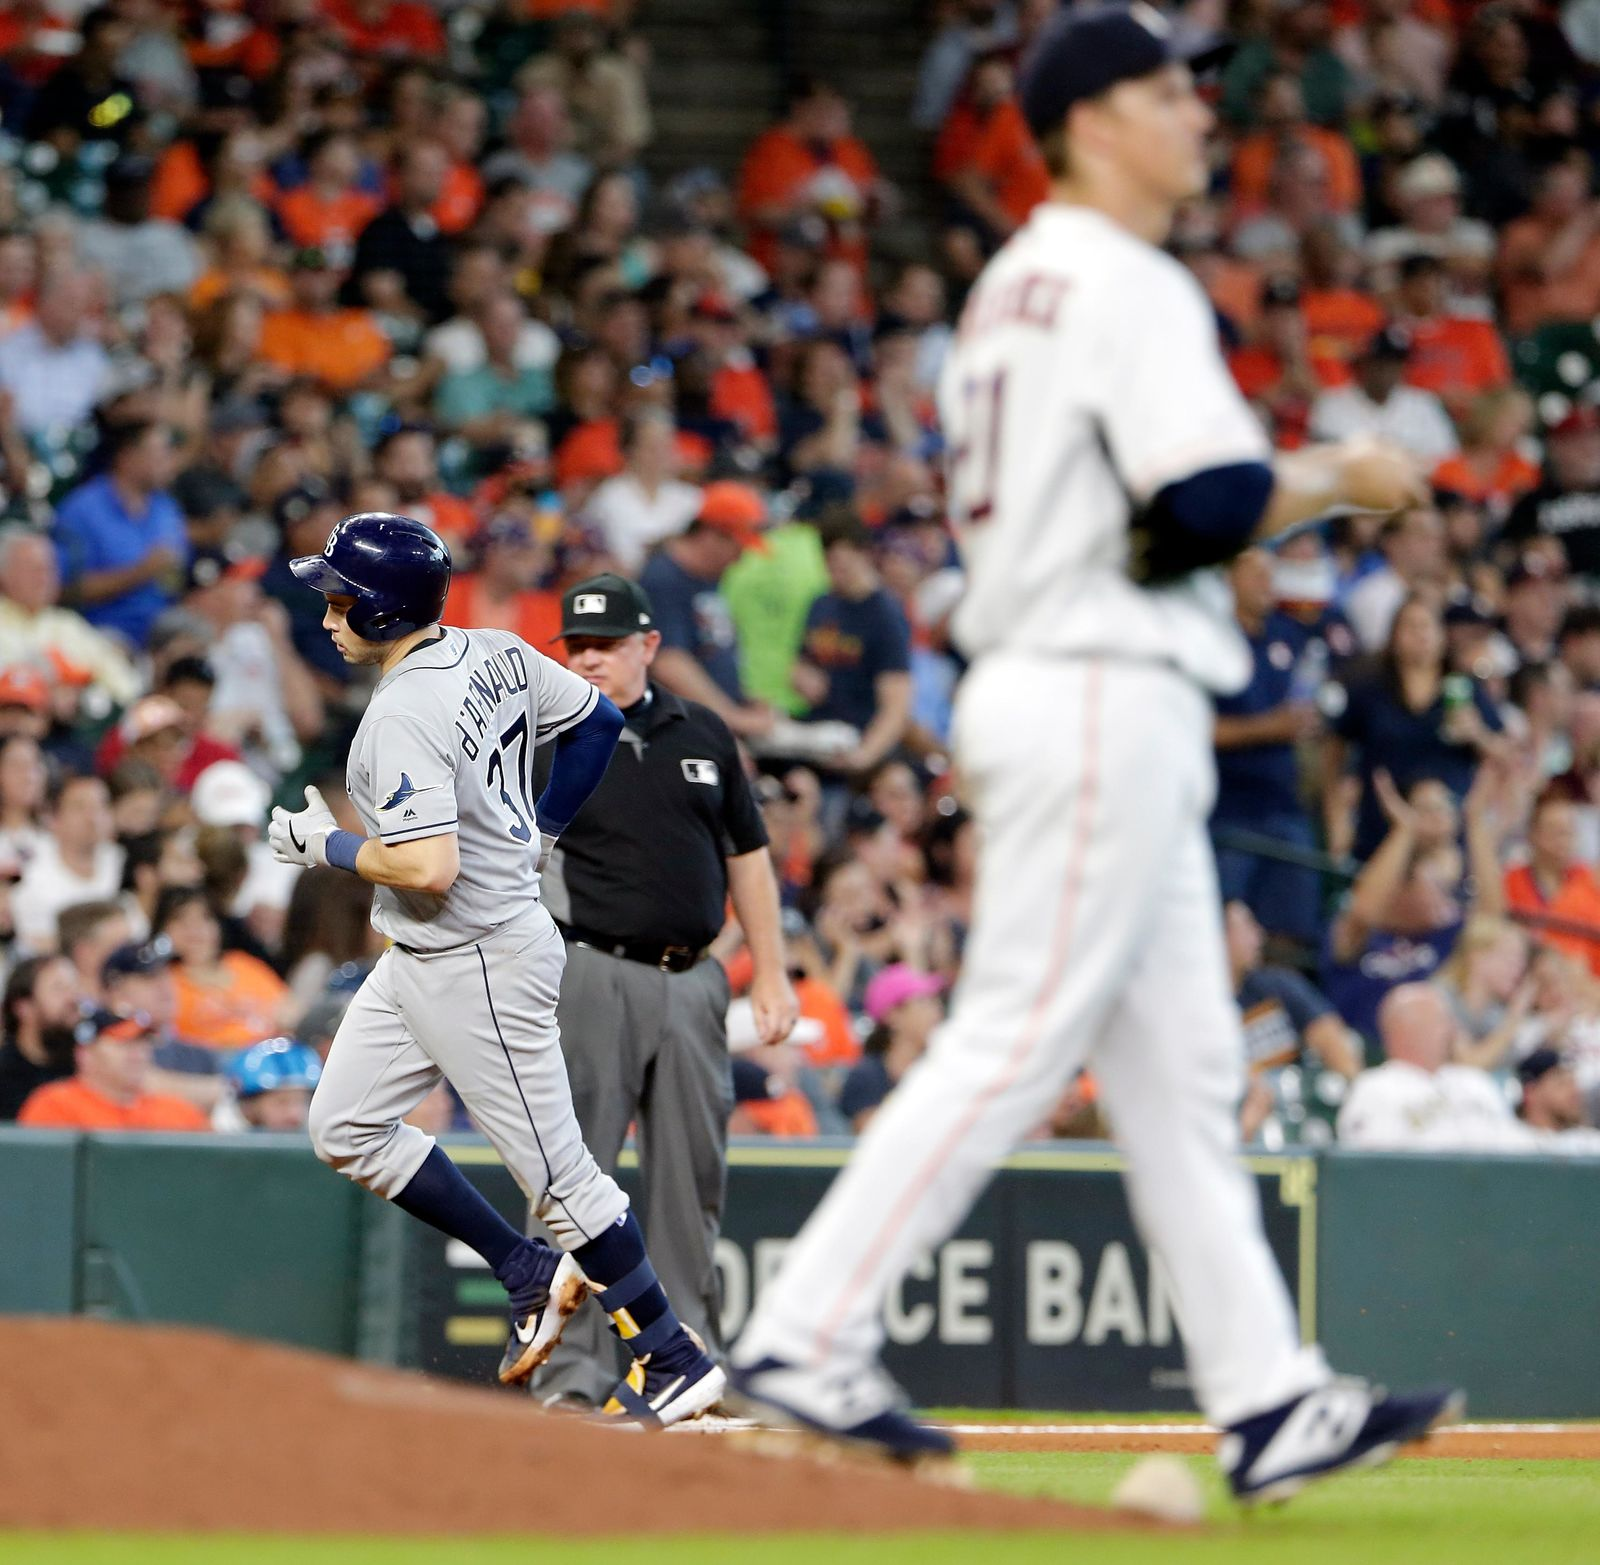 Tampa Bay Rays' Travis d'Arnaud (37) rounds the bases on his two run home run as Houston Astros starting pitcher Zack Greinke, right, walks off the mound during the fourth inning of a baseball game Thursday, Aug. 29, 2019, in Houston. (AP Photo/Michael Wyke)